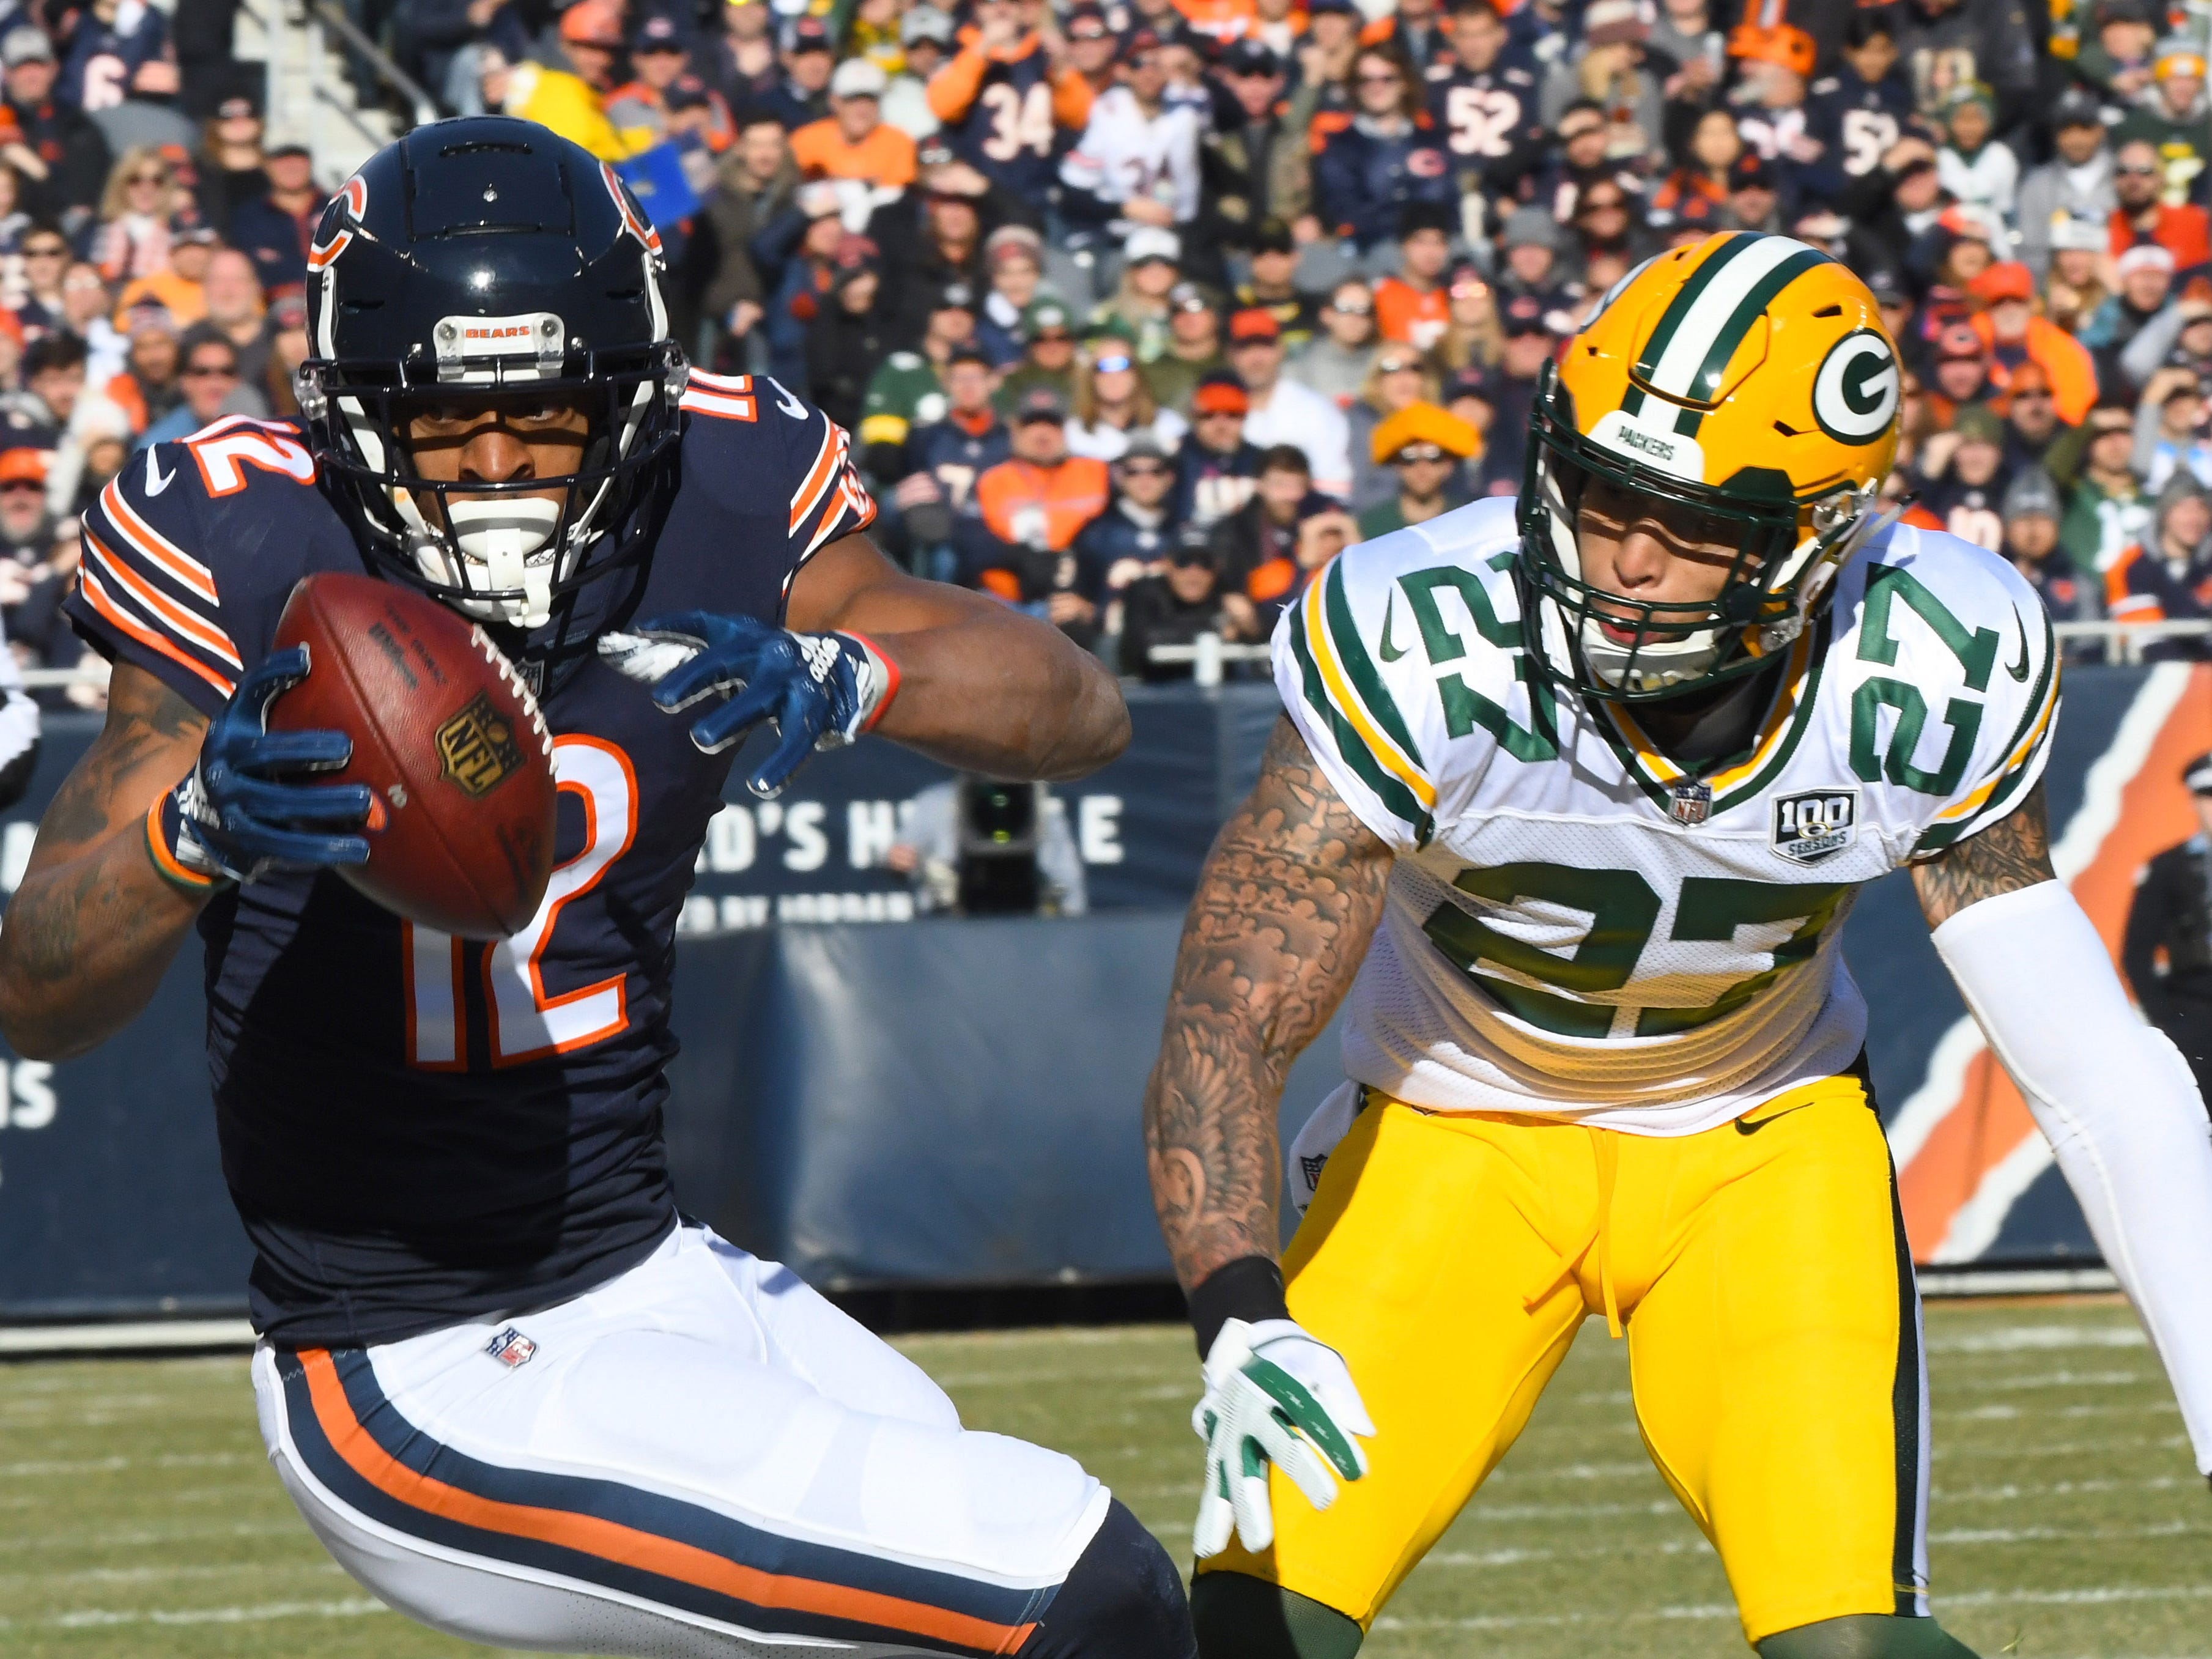 Bears wide receiver Allen Robinson (12) makes a catch against Packers defensive back Josh Jones (27).